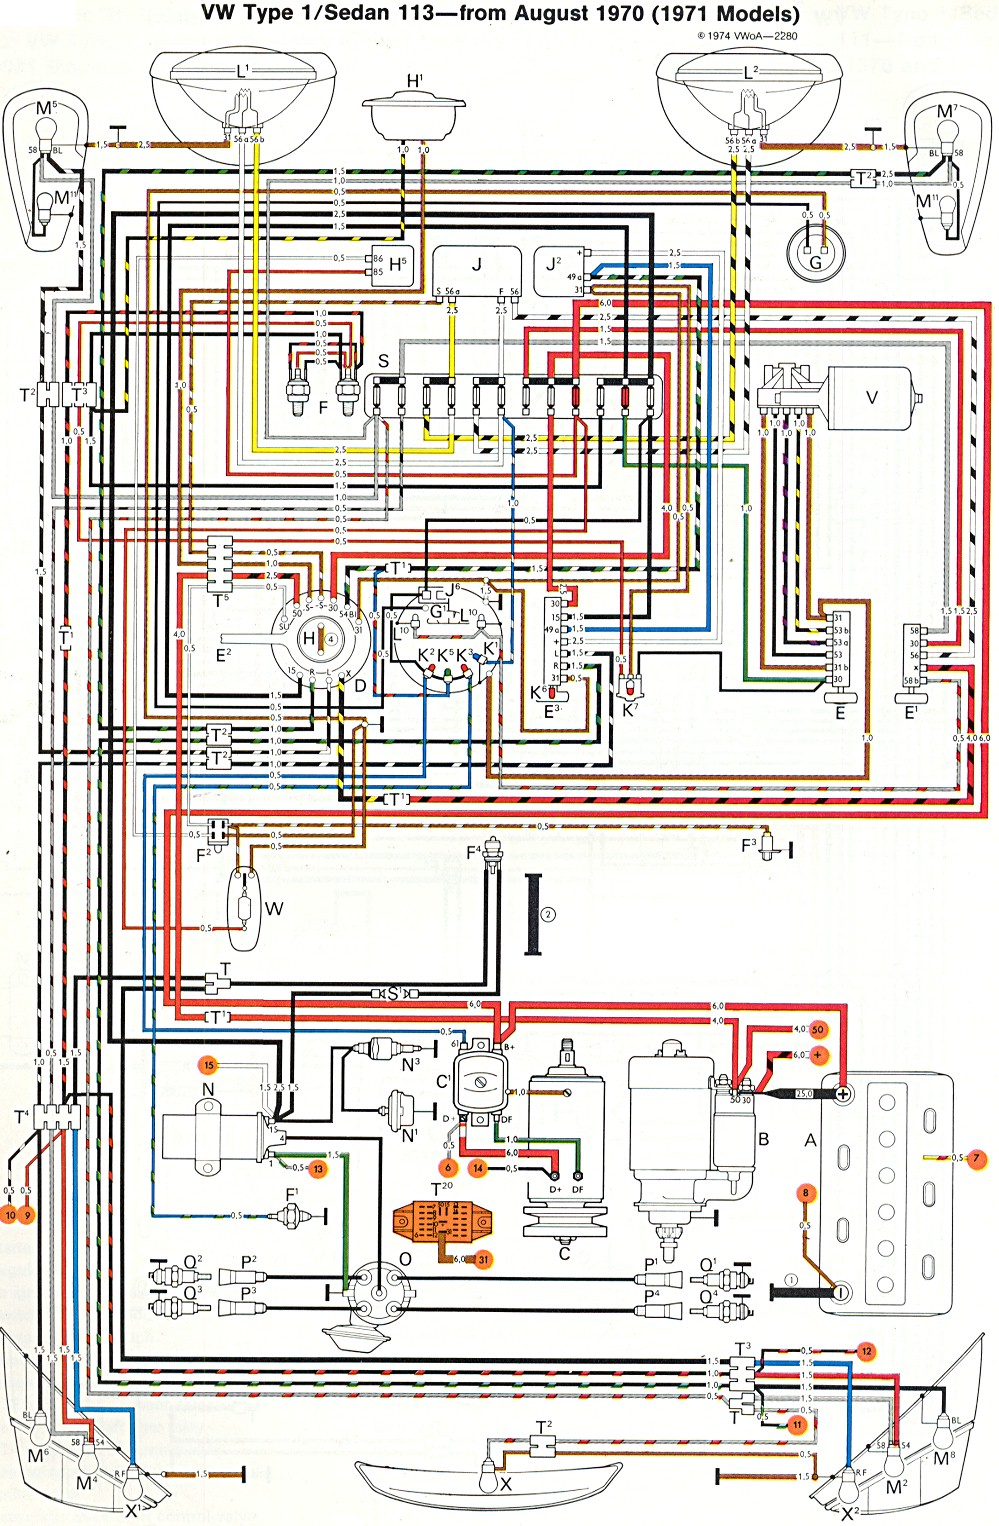 bug_super_71 2002 vw beetle wiring diagram altenator wiring diagram 2002 vw Wiring Harness Diagram at metegol.co